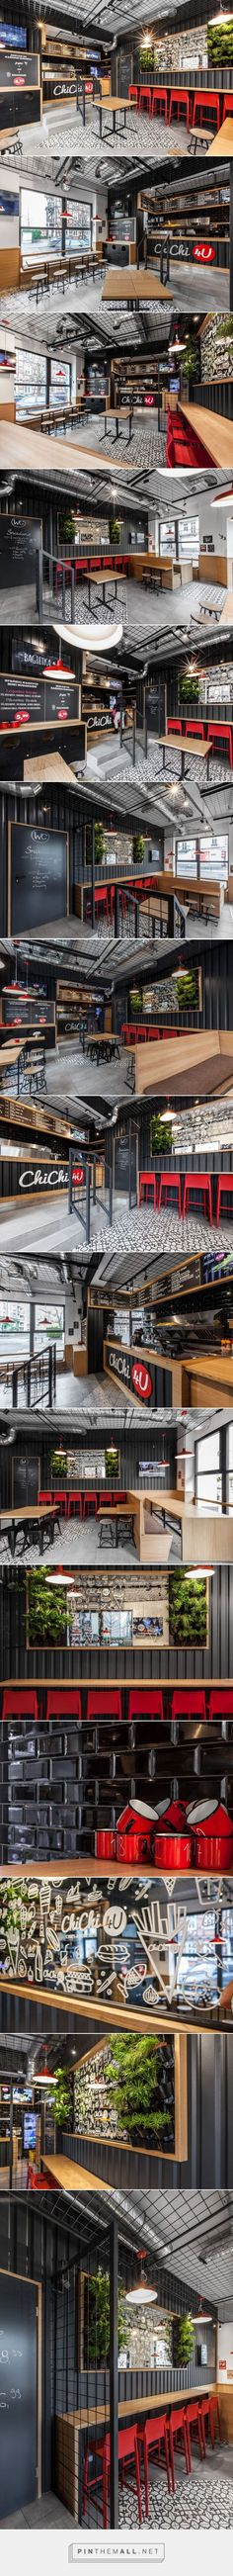 ChiChi Burger Bar on Behance. - a grouped images picture - Pin Them All Café Bar, Bar A Vin, Architecture Restaurant, Café Restaurant, Restaurant Design, Coffee Shop Interior Design, Coffee Shop Design, Burger Bar, H Design